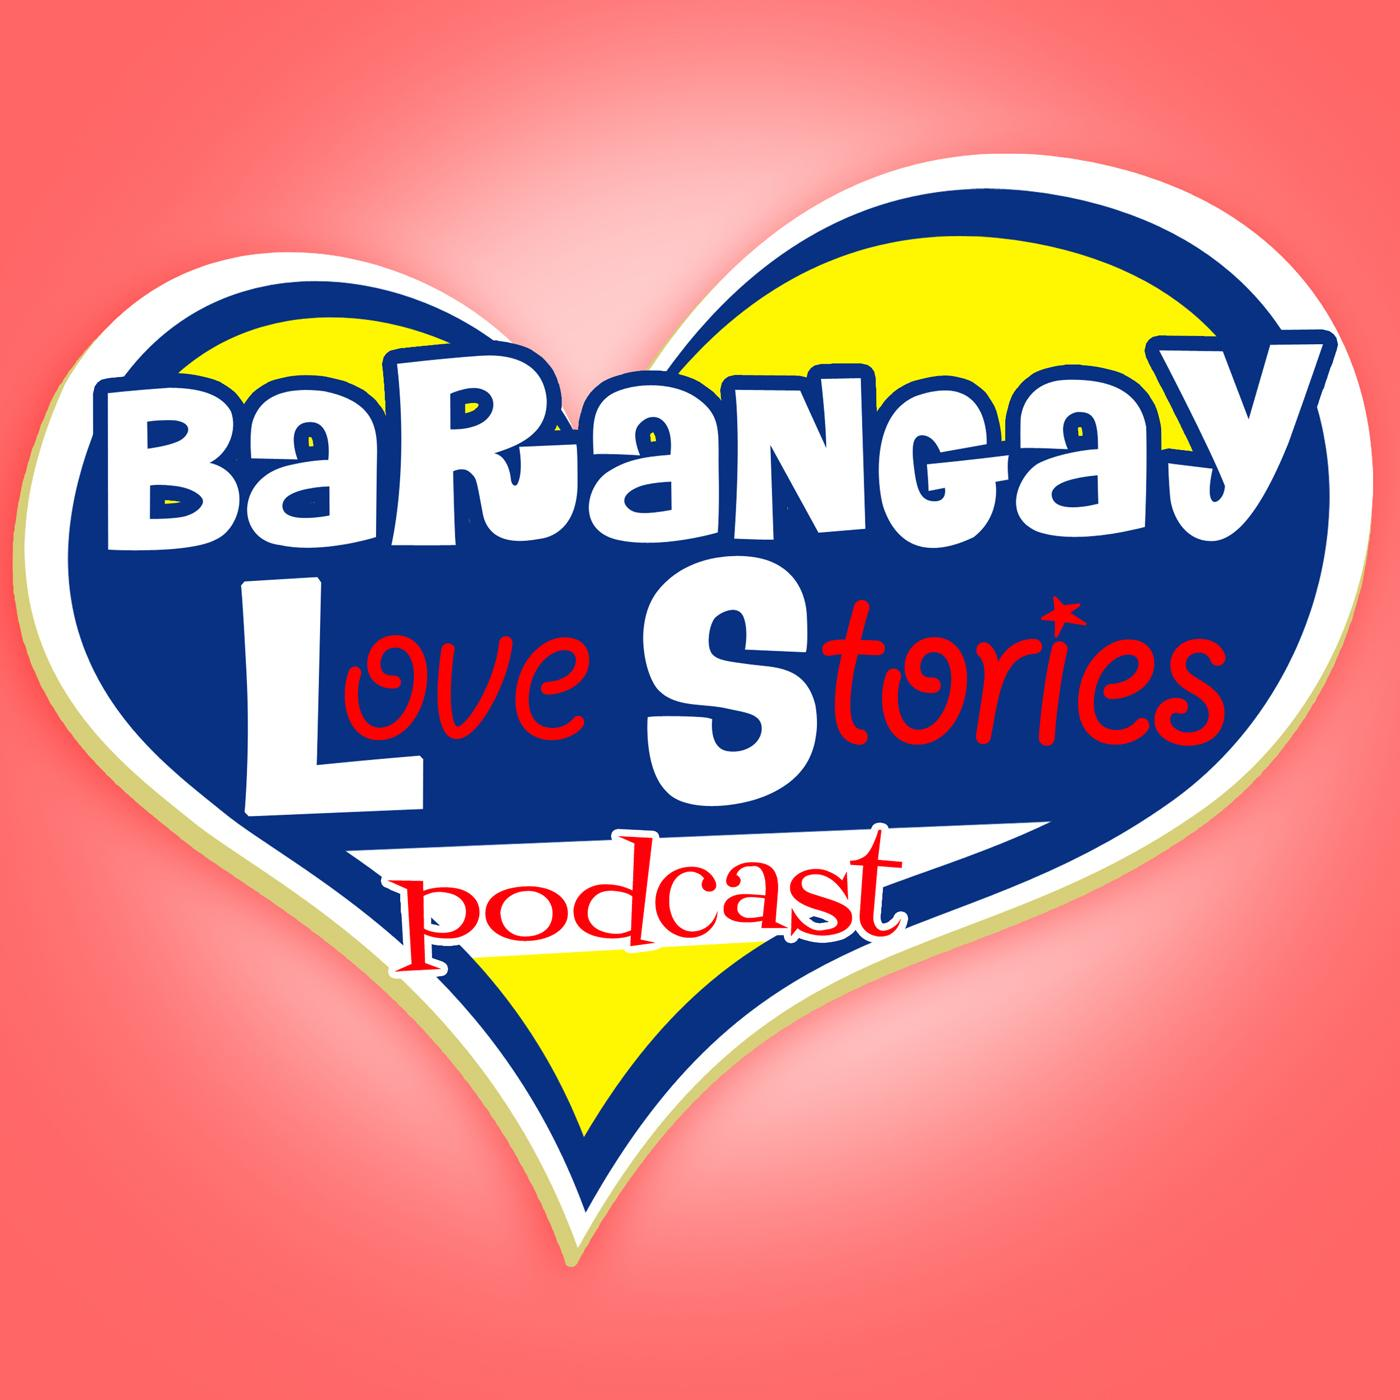 Arte Radio Podcast Barangay Love Stories Podcast